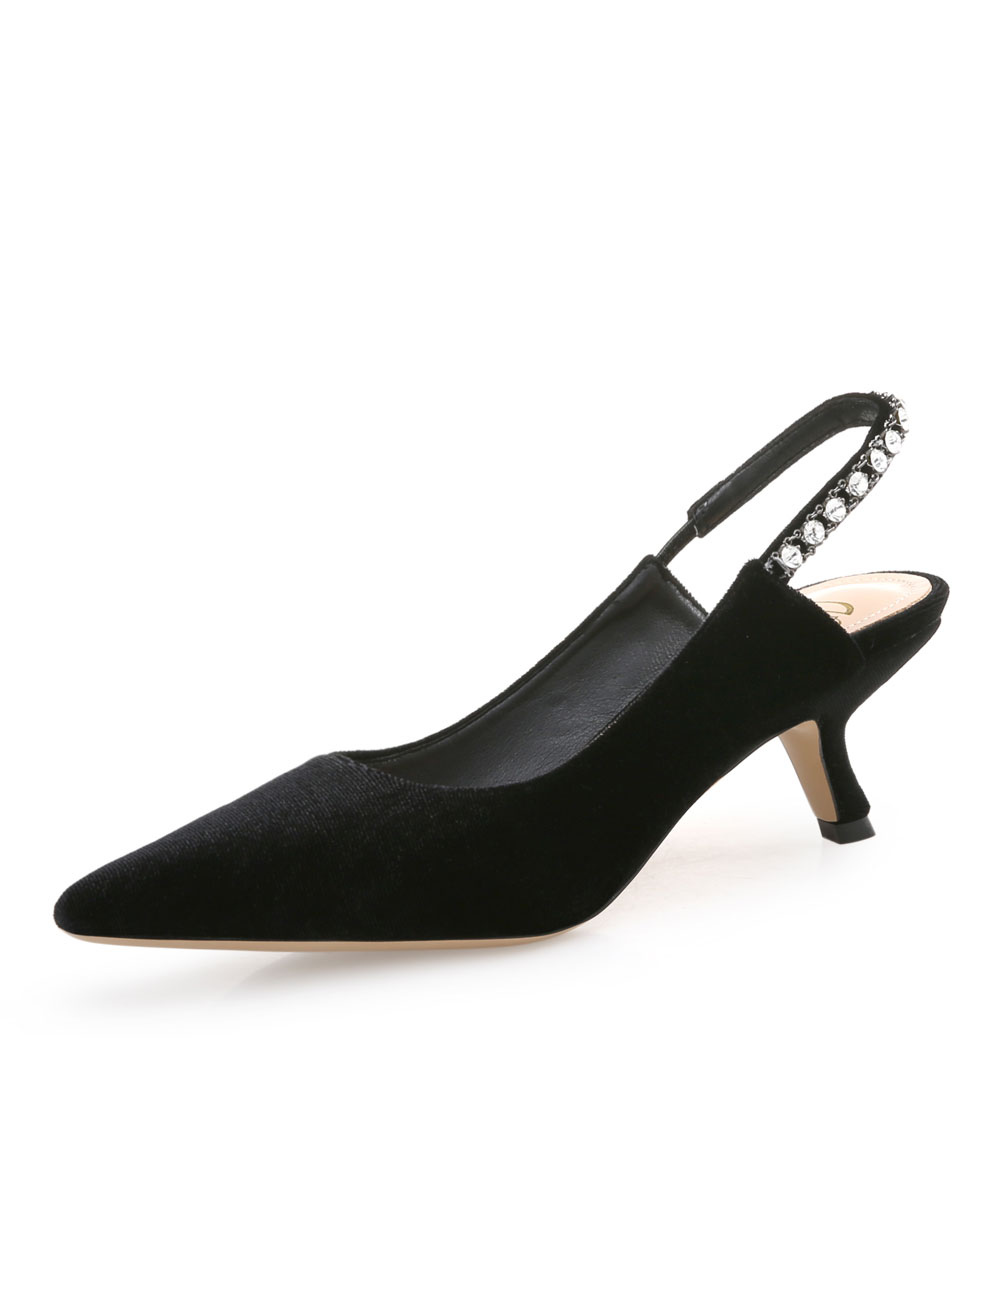 Buy Black Pump Shoes Pointed Toe Rhinestones Slingbacks Slip On Kitten Heels For Women for $36.89 in Milanoo store